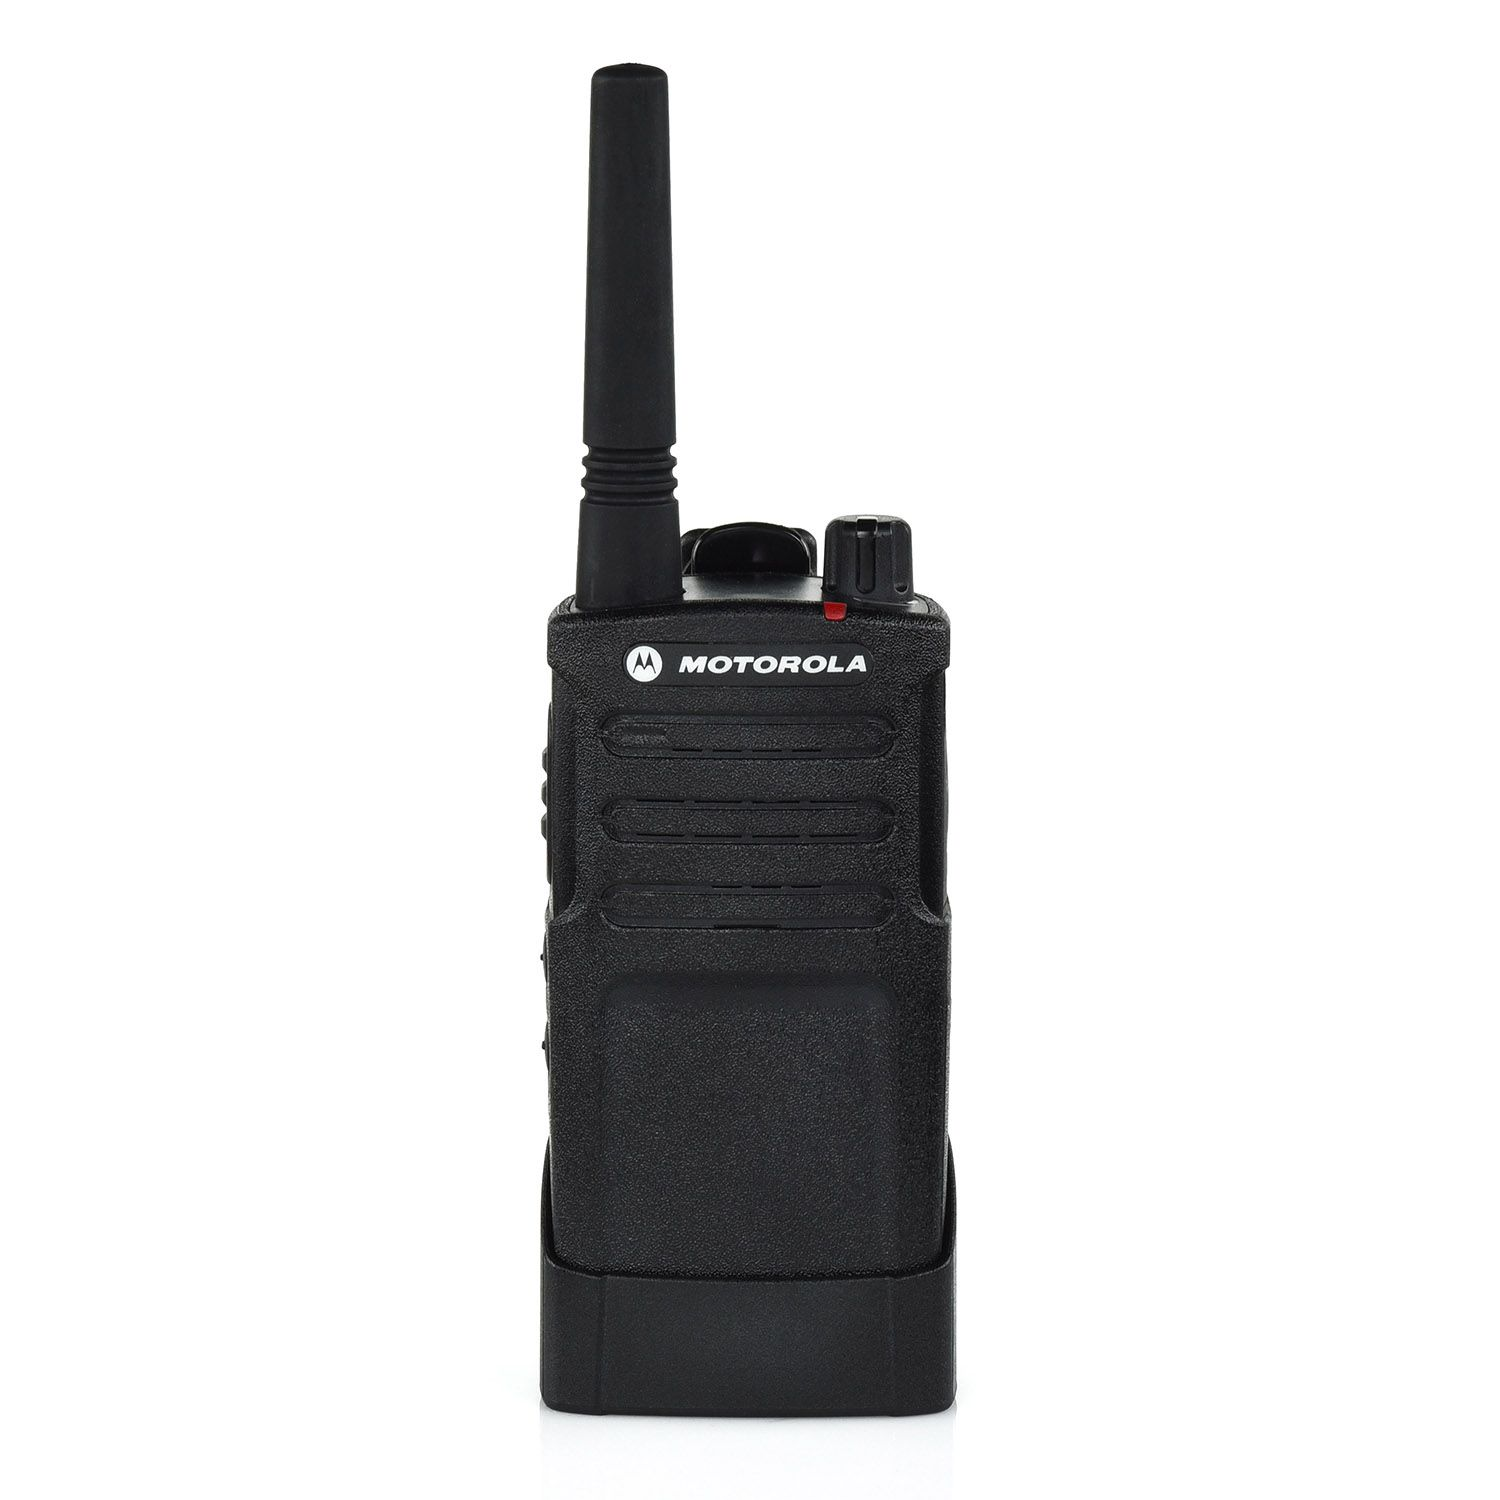 rmu2040 two way radio motorola solutions rh motorolasolutions com Motorola GTR 8000 Motorola GTR 8000